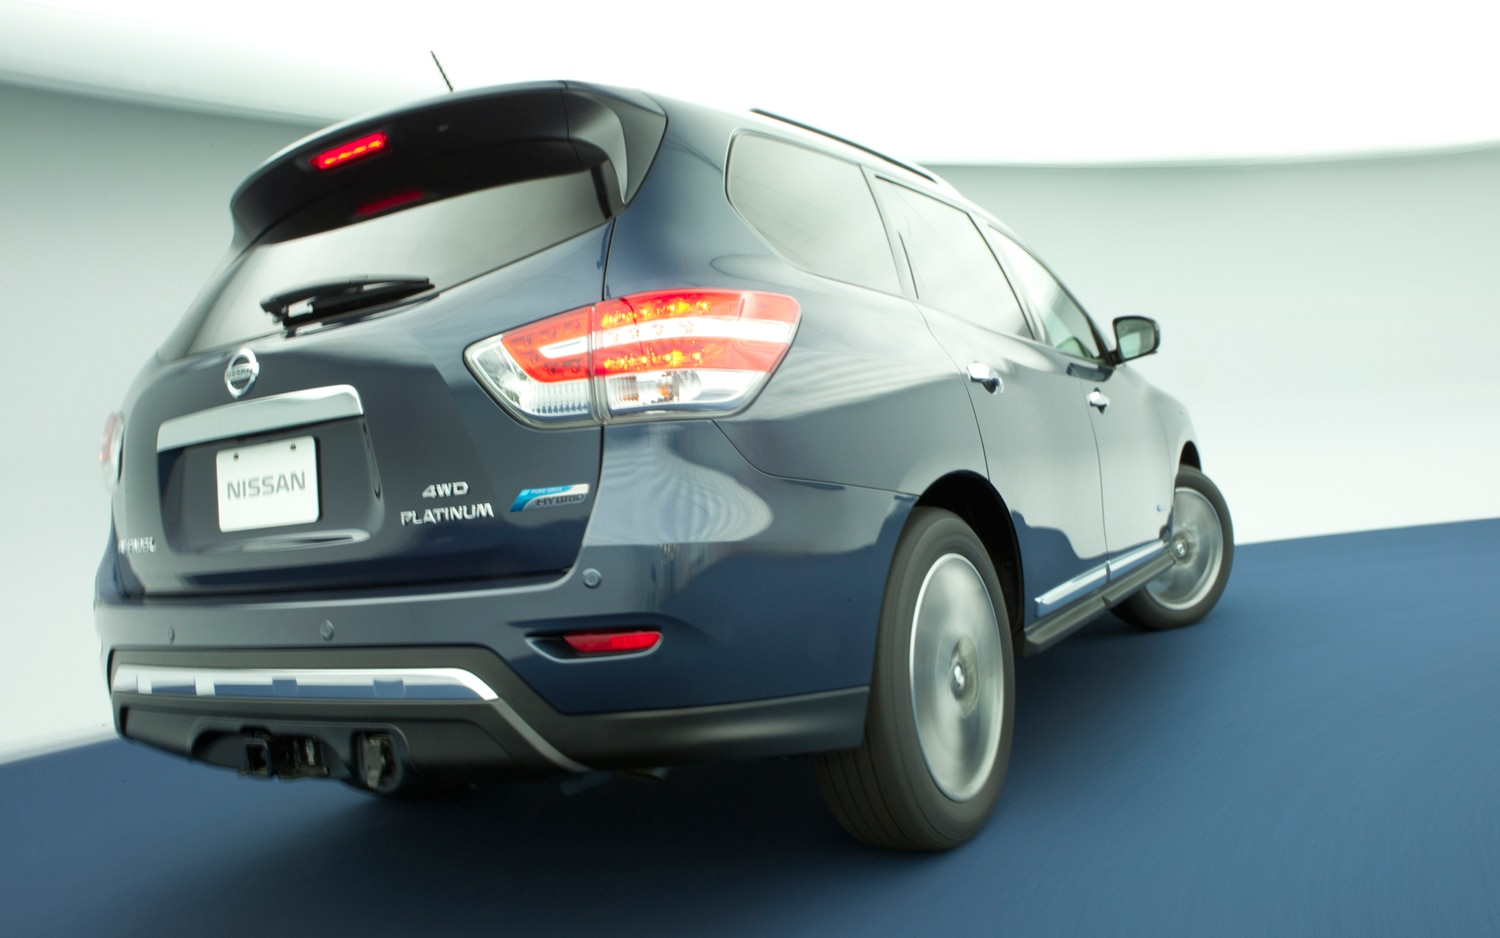 2014 Nissan Pathfinder Hybrid Rear View In Motion1